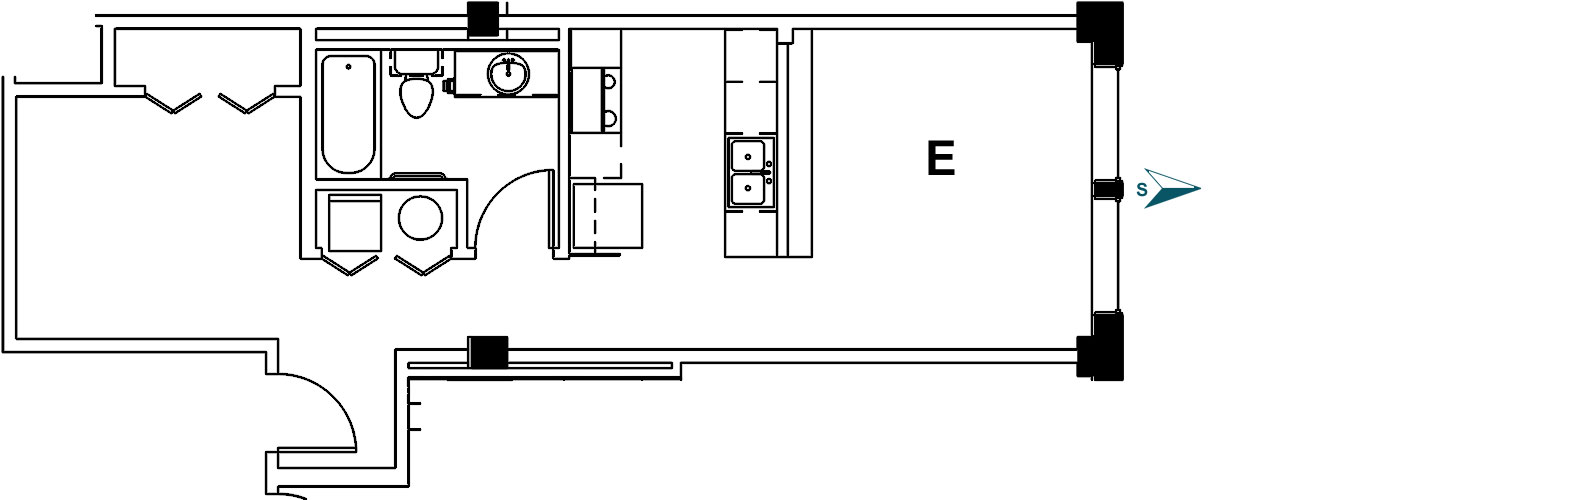 Palace Apt 2E Floor Plan